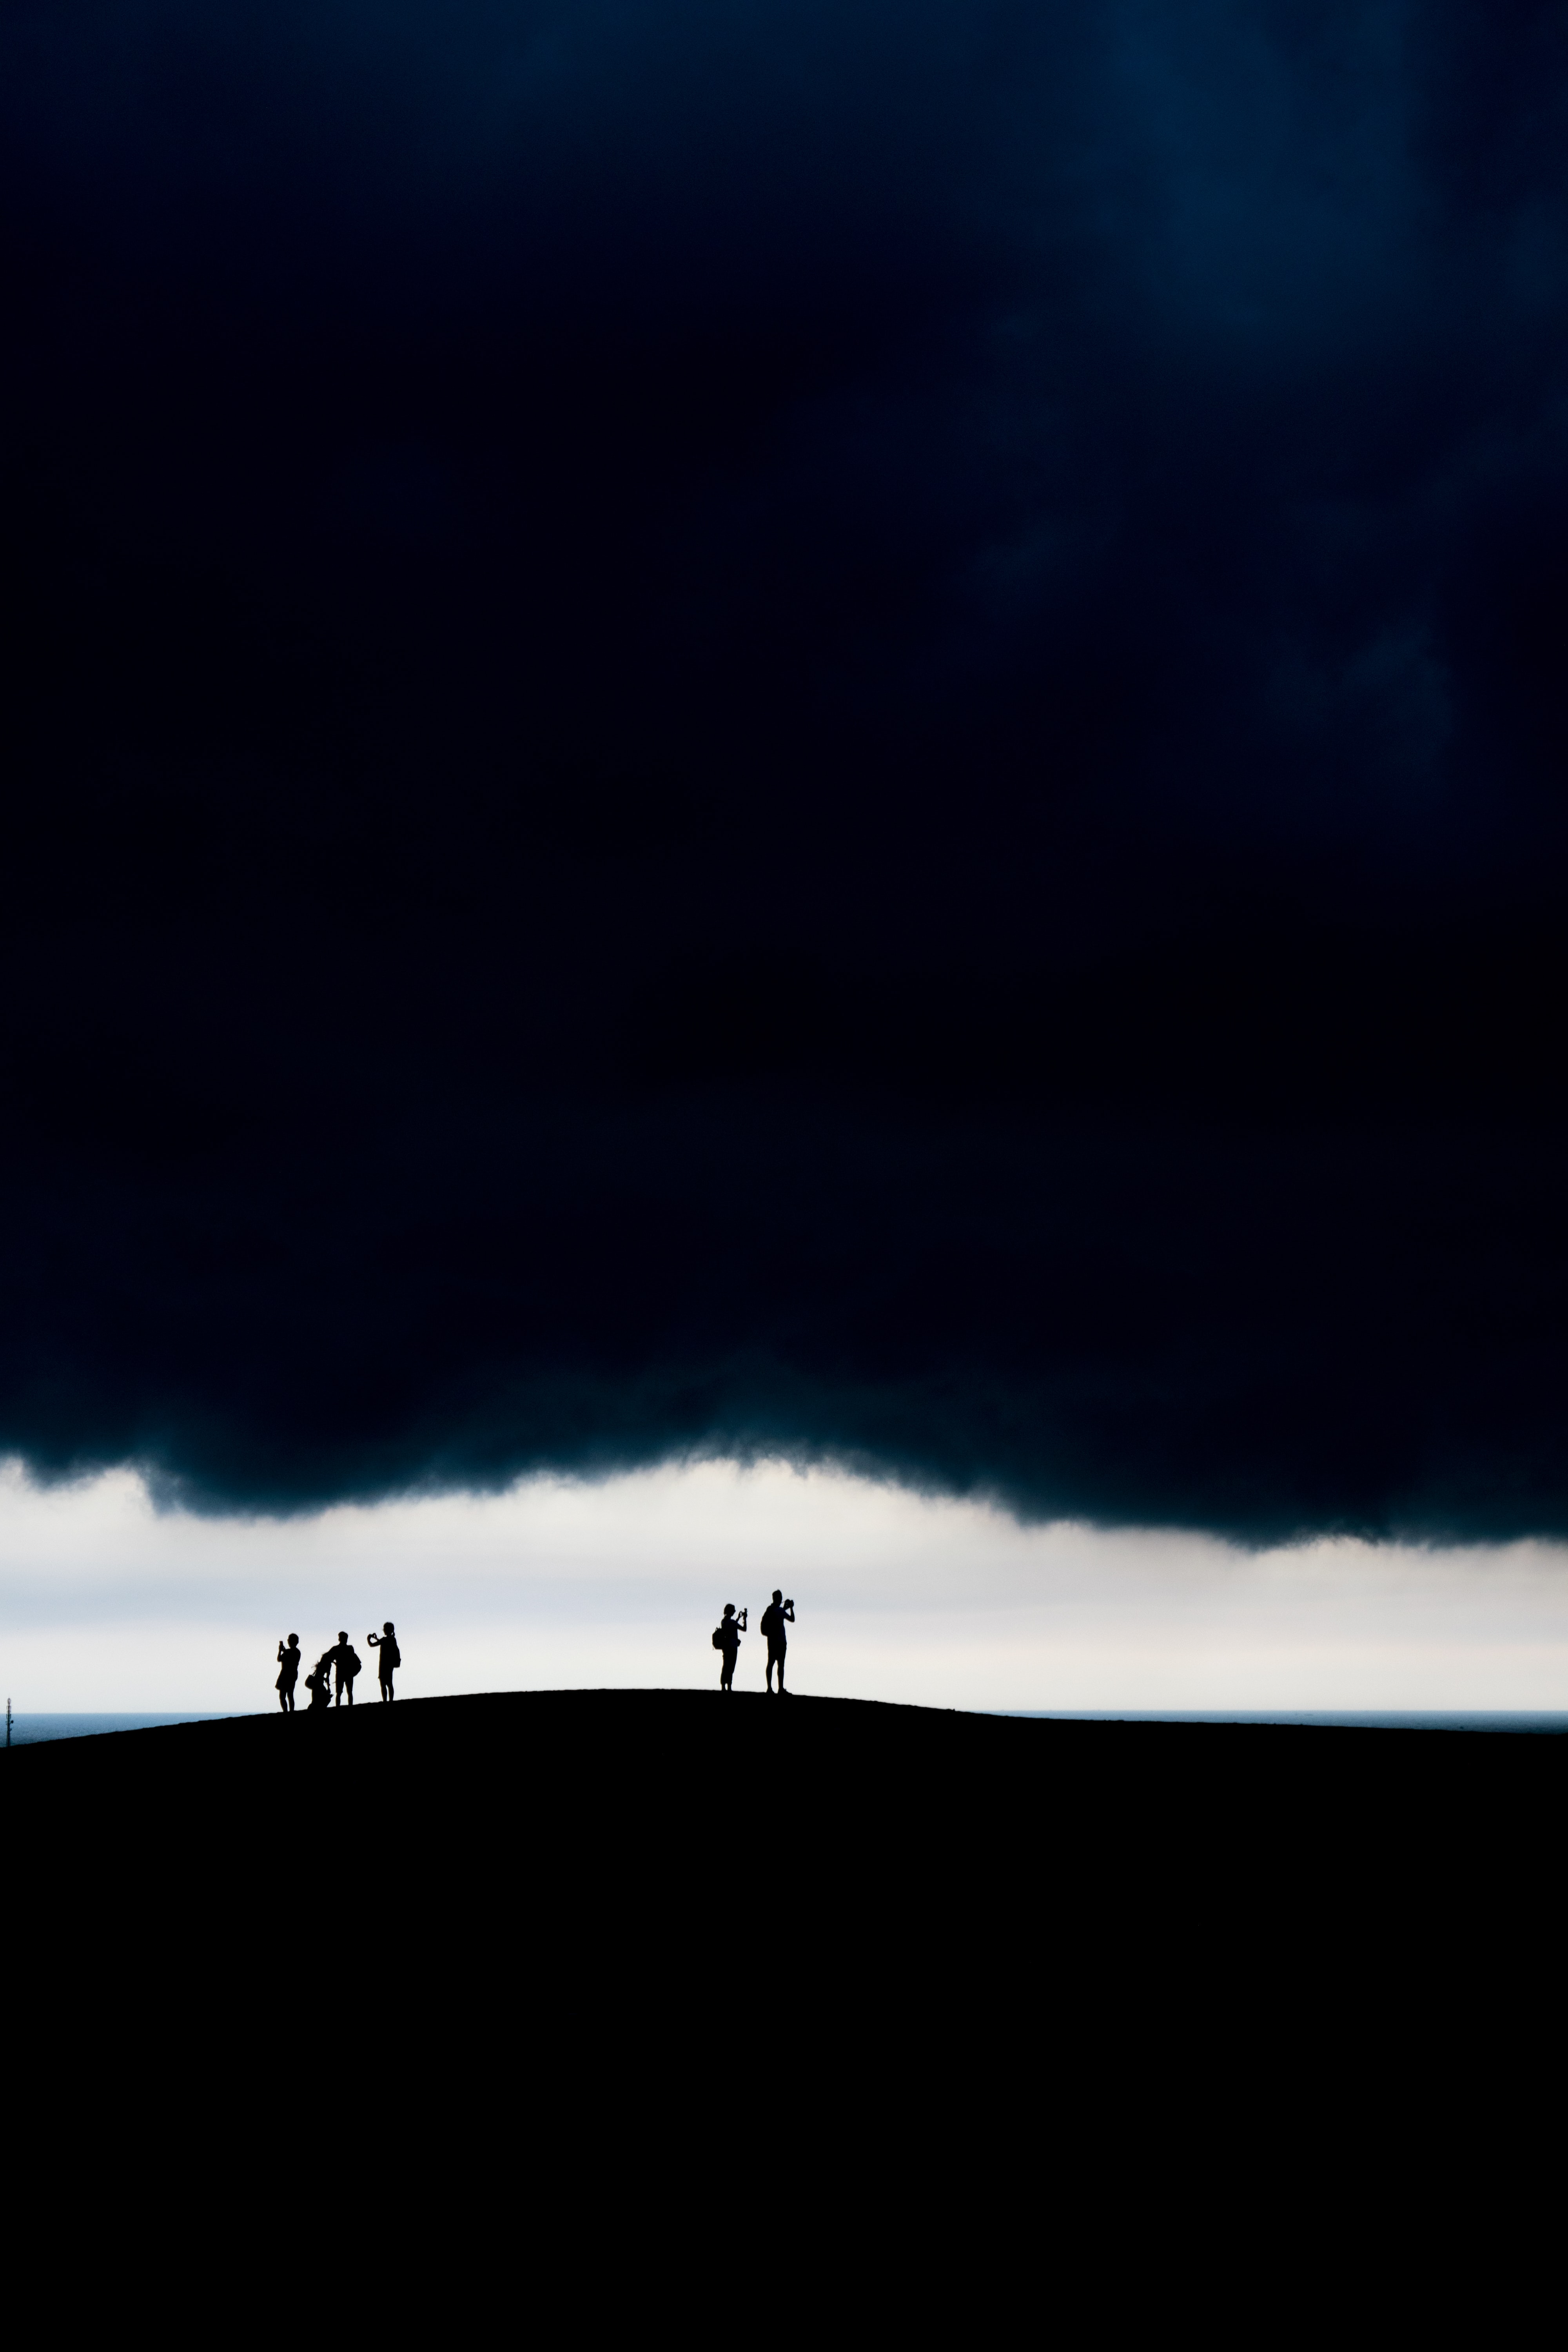 silhouette group of people on hill under dark clouds